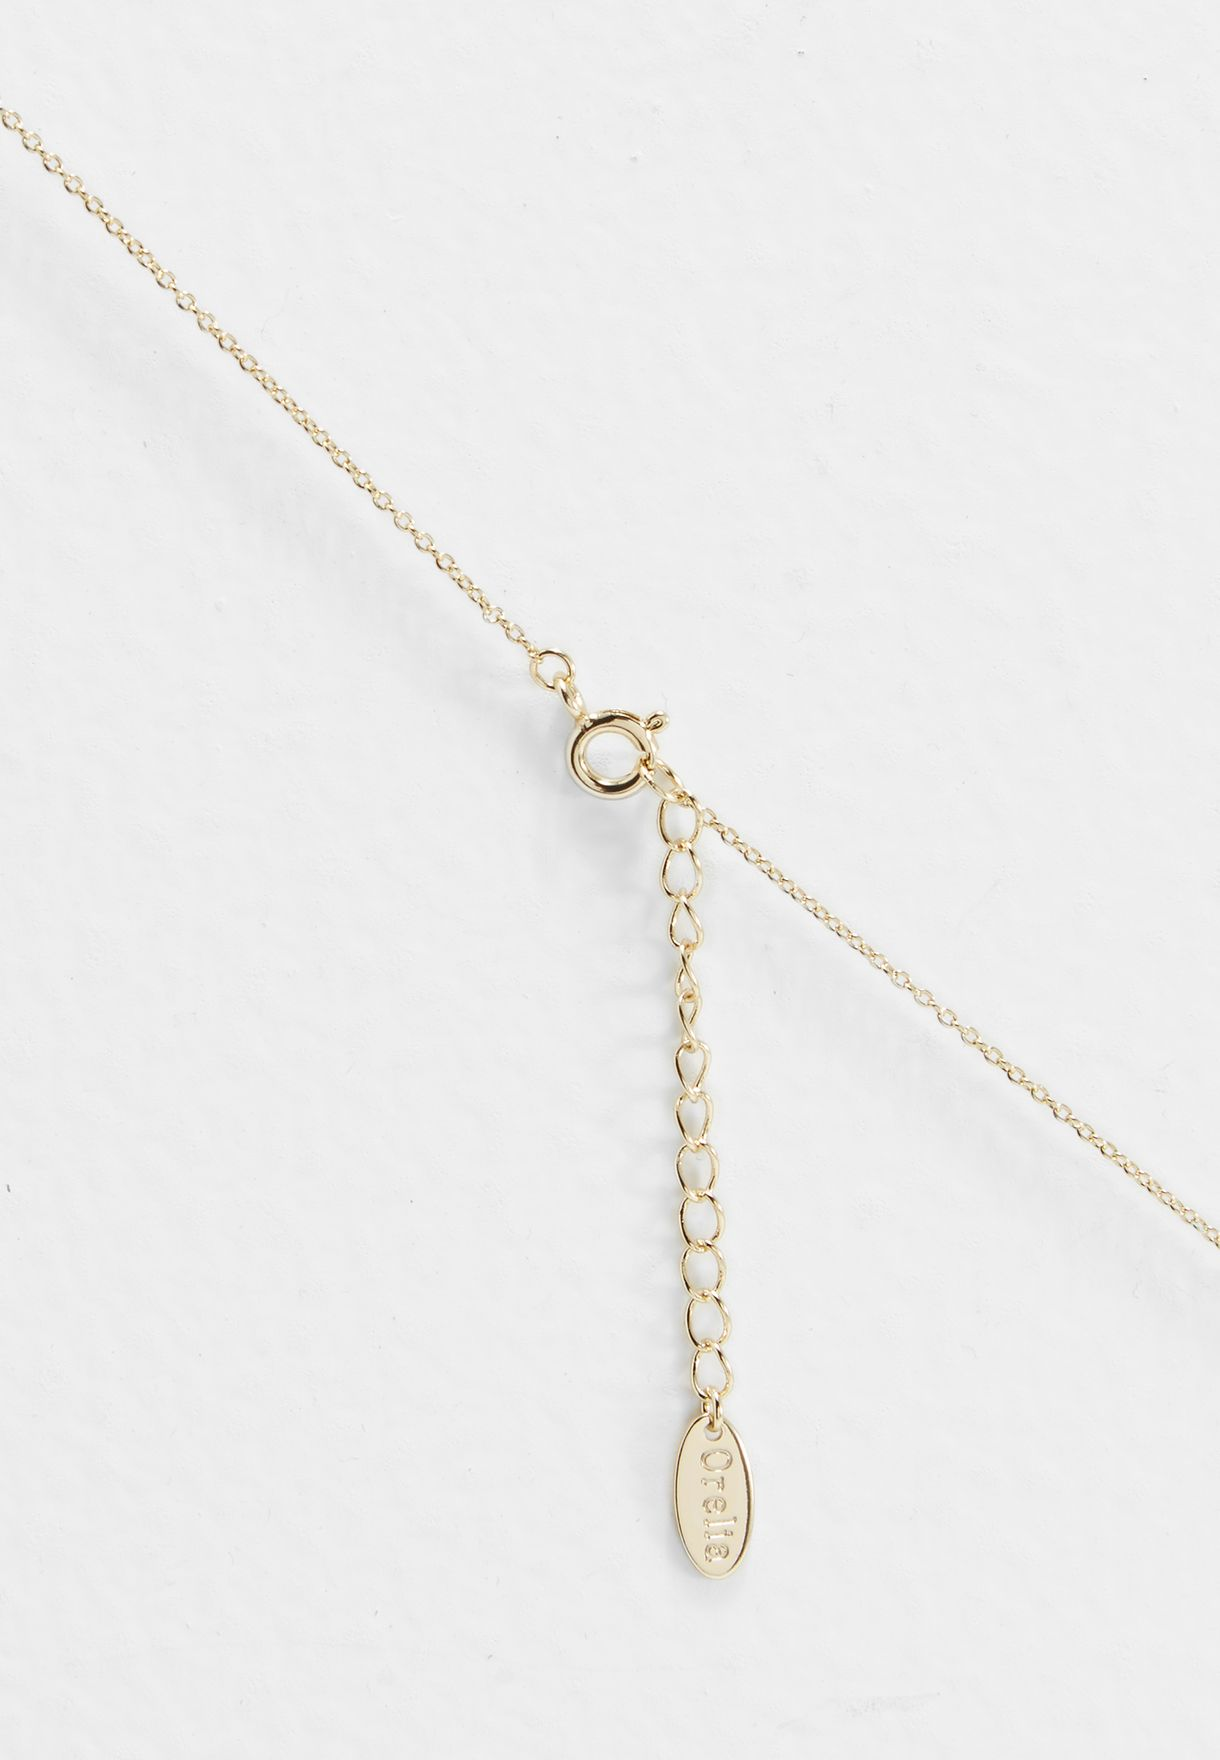 Best Bridesmaid Necklace With Giftcard